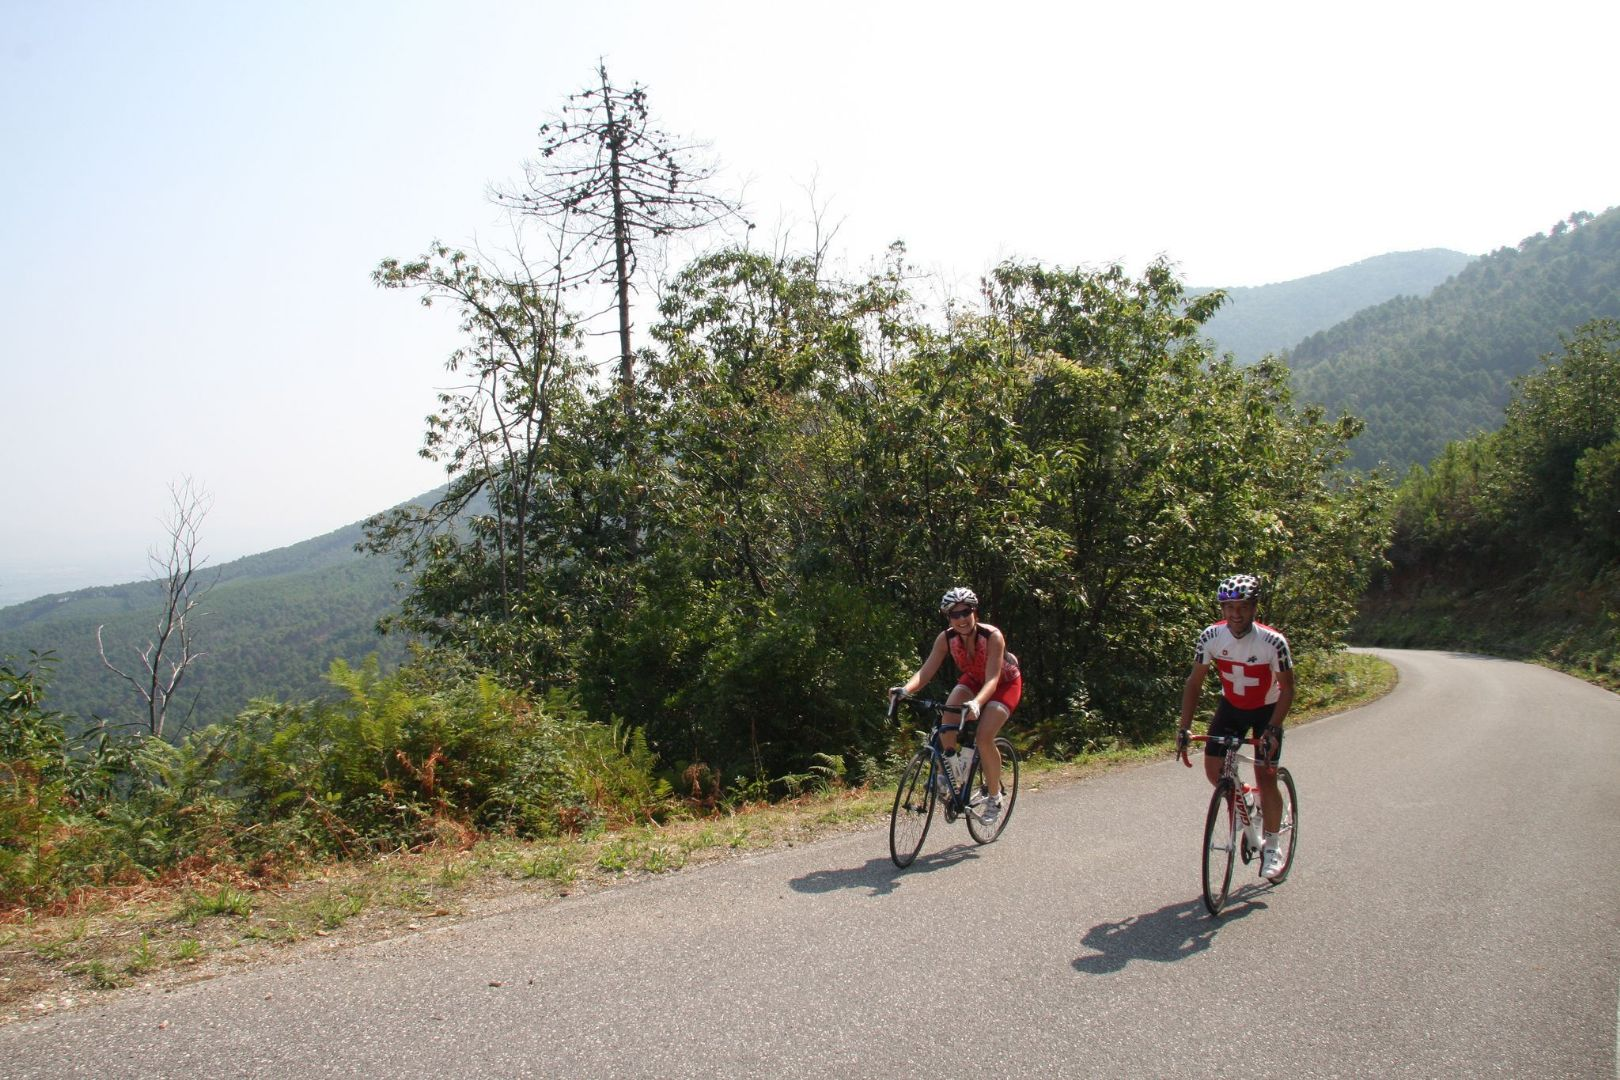 azores road3.jpg - The Azores - Lakes and Volcanoes - Self-Guided Road Cycling Holiday - Road Cycling